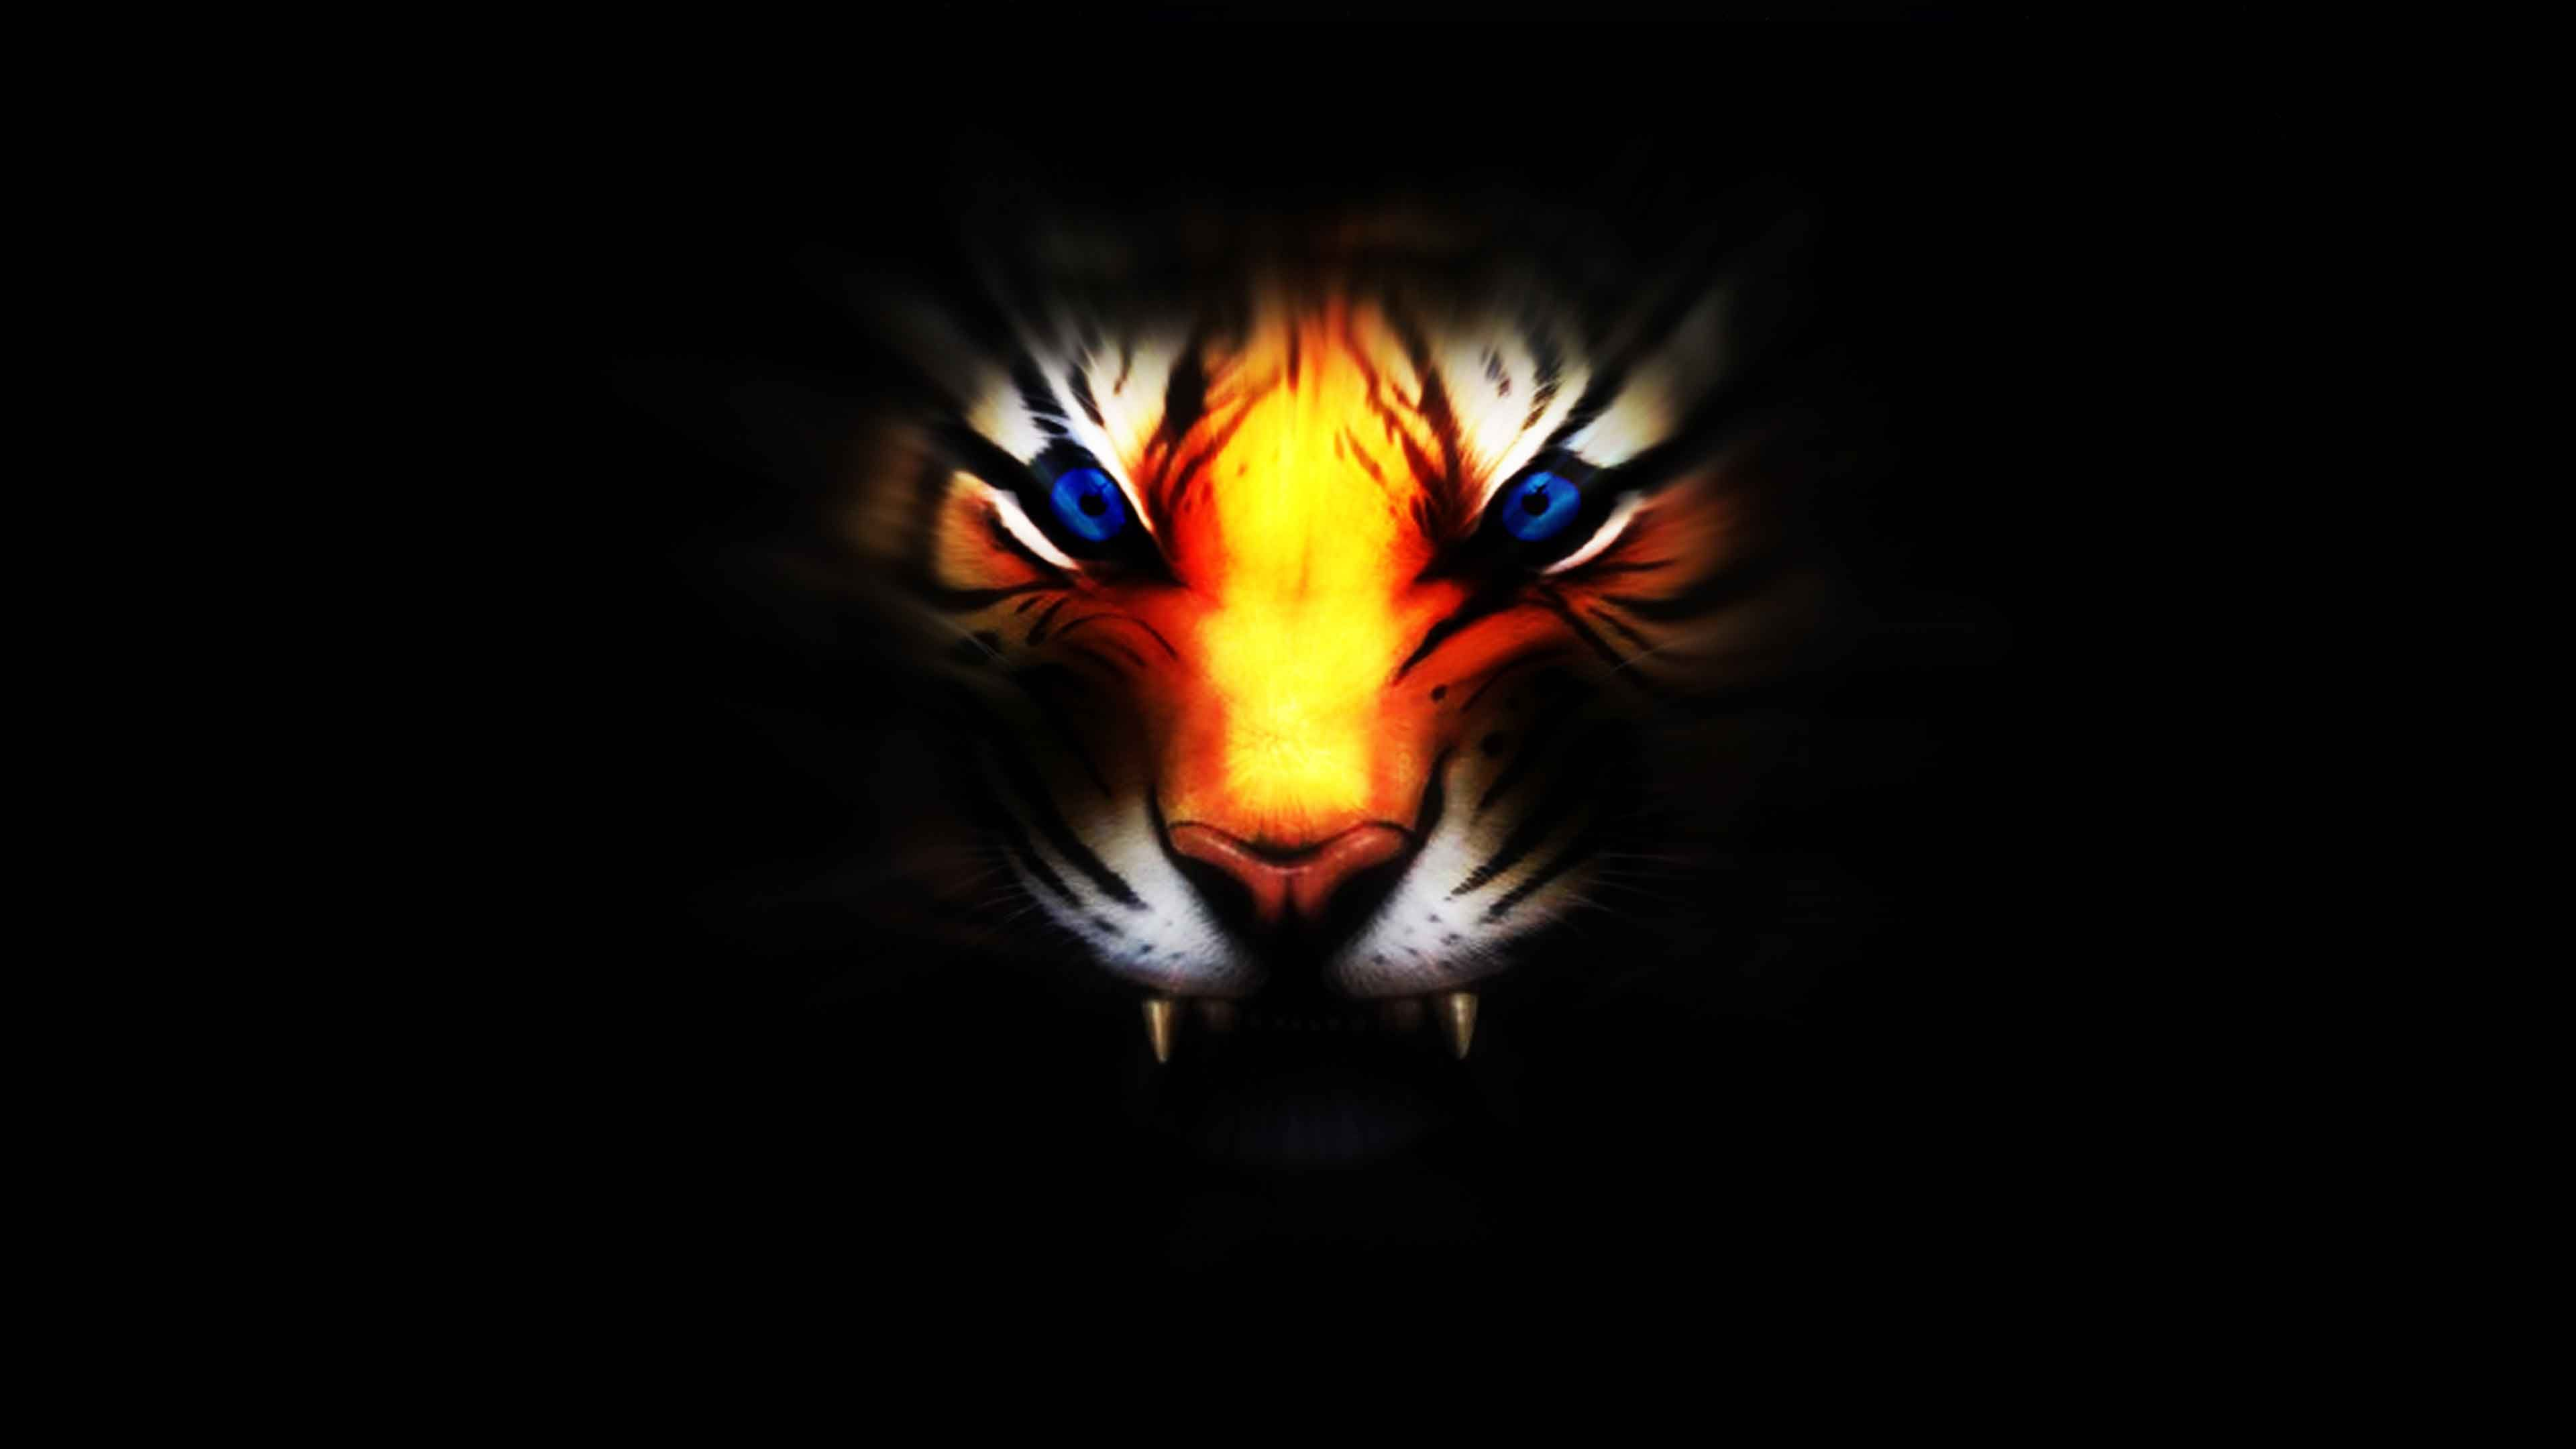 Tiger Wallpapers 3d Photo Tiger wallpaper, Animal